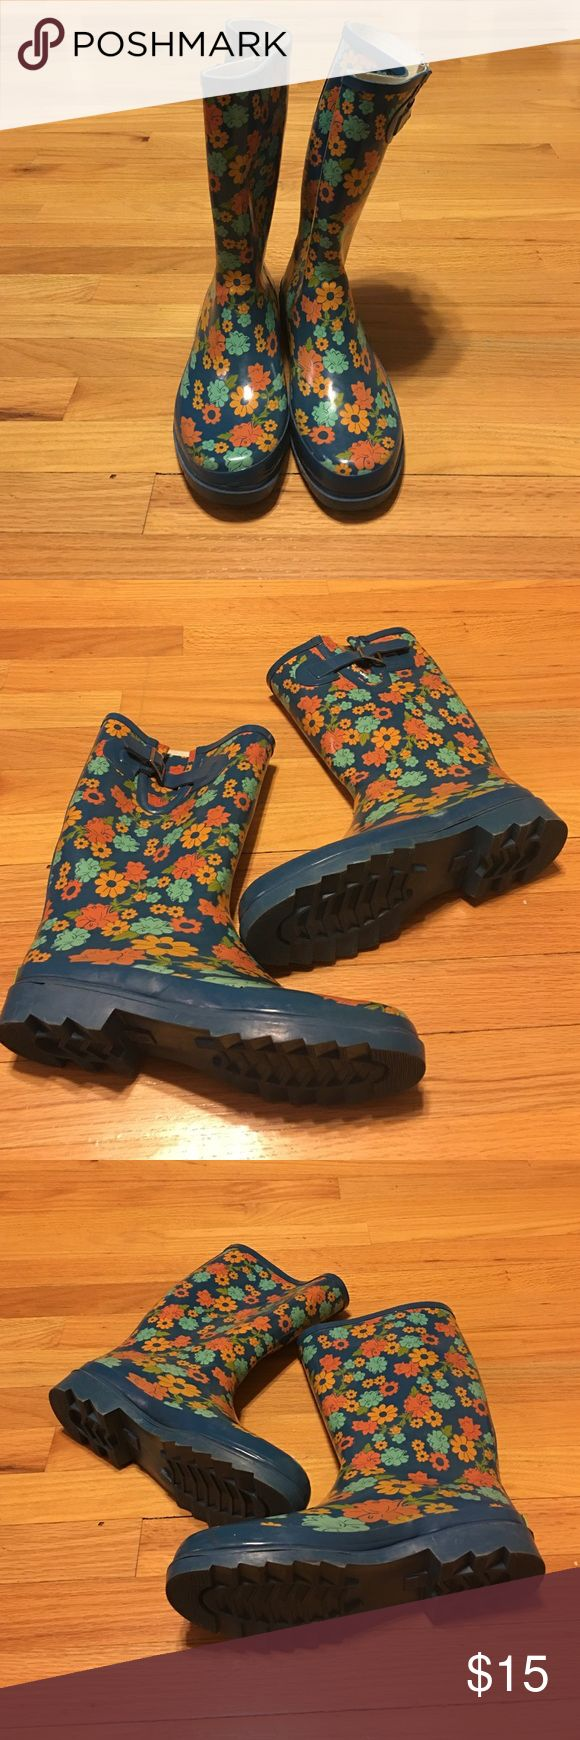 Rain boots Western chief Rain boots in excellent condition Western Chief Shoes Winter & Rain Boots